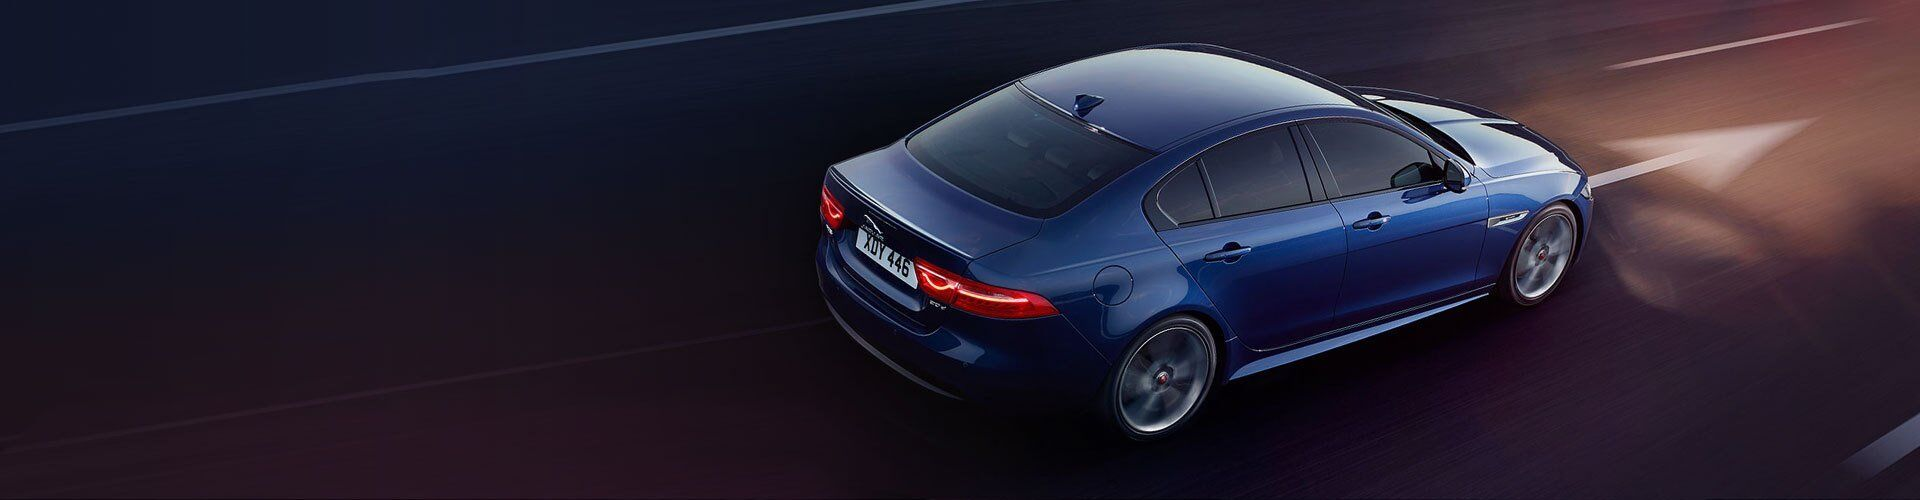 New Jaguar XE at Jaguar of Tacoma